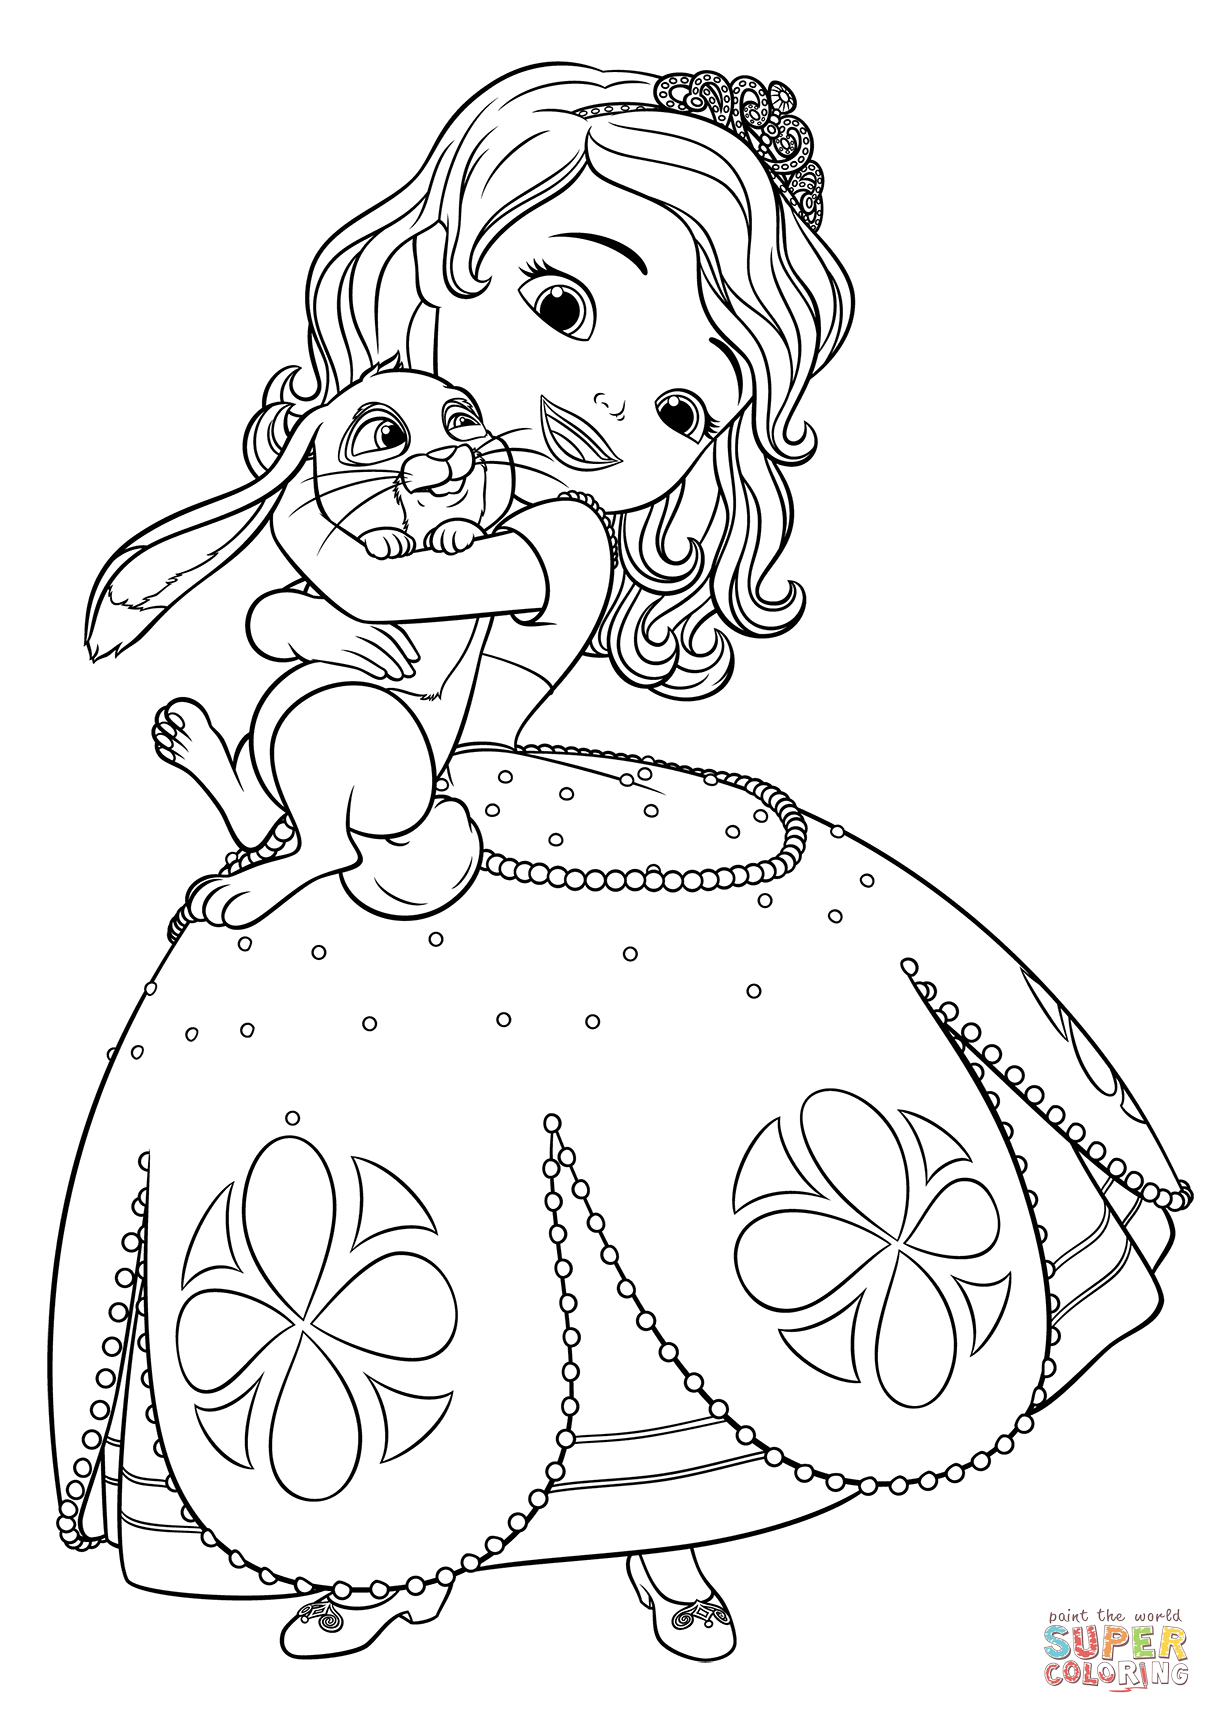 Sofia And Clover Super Coloring Coloring Pages Kids Coloring